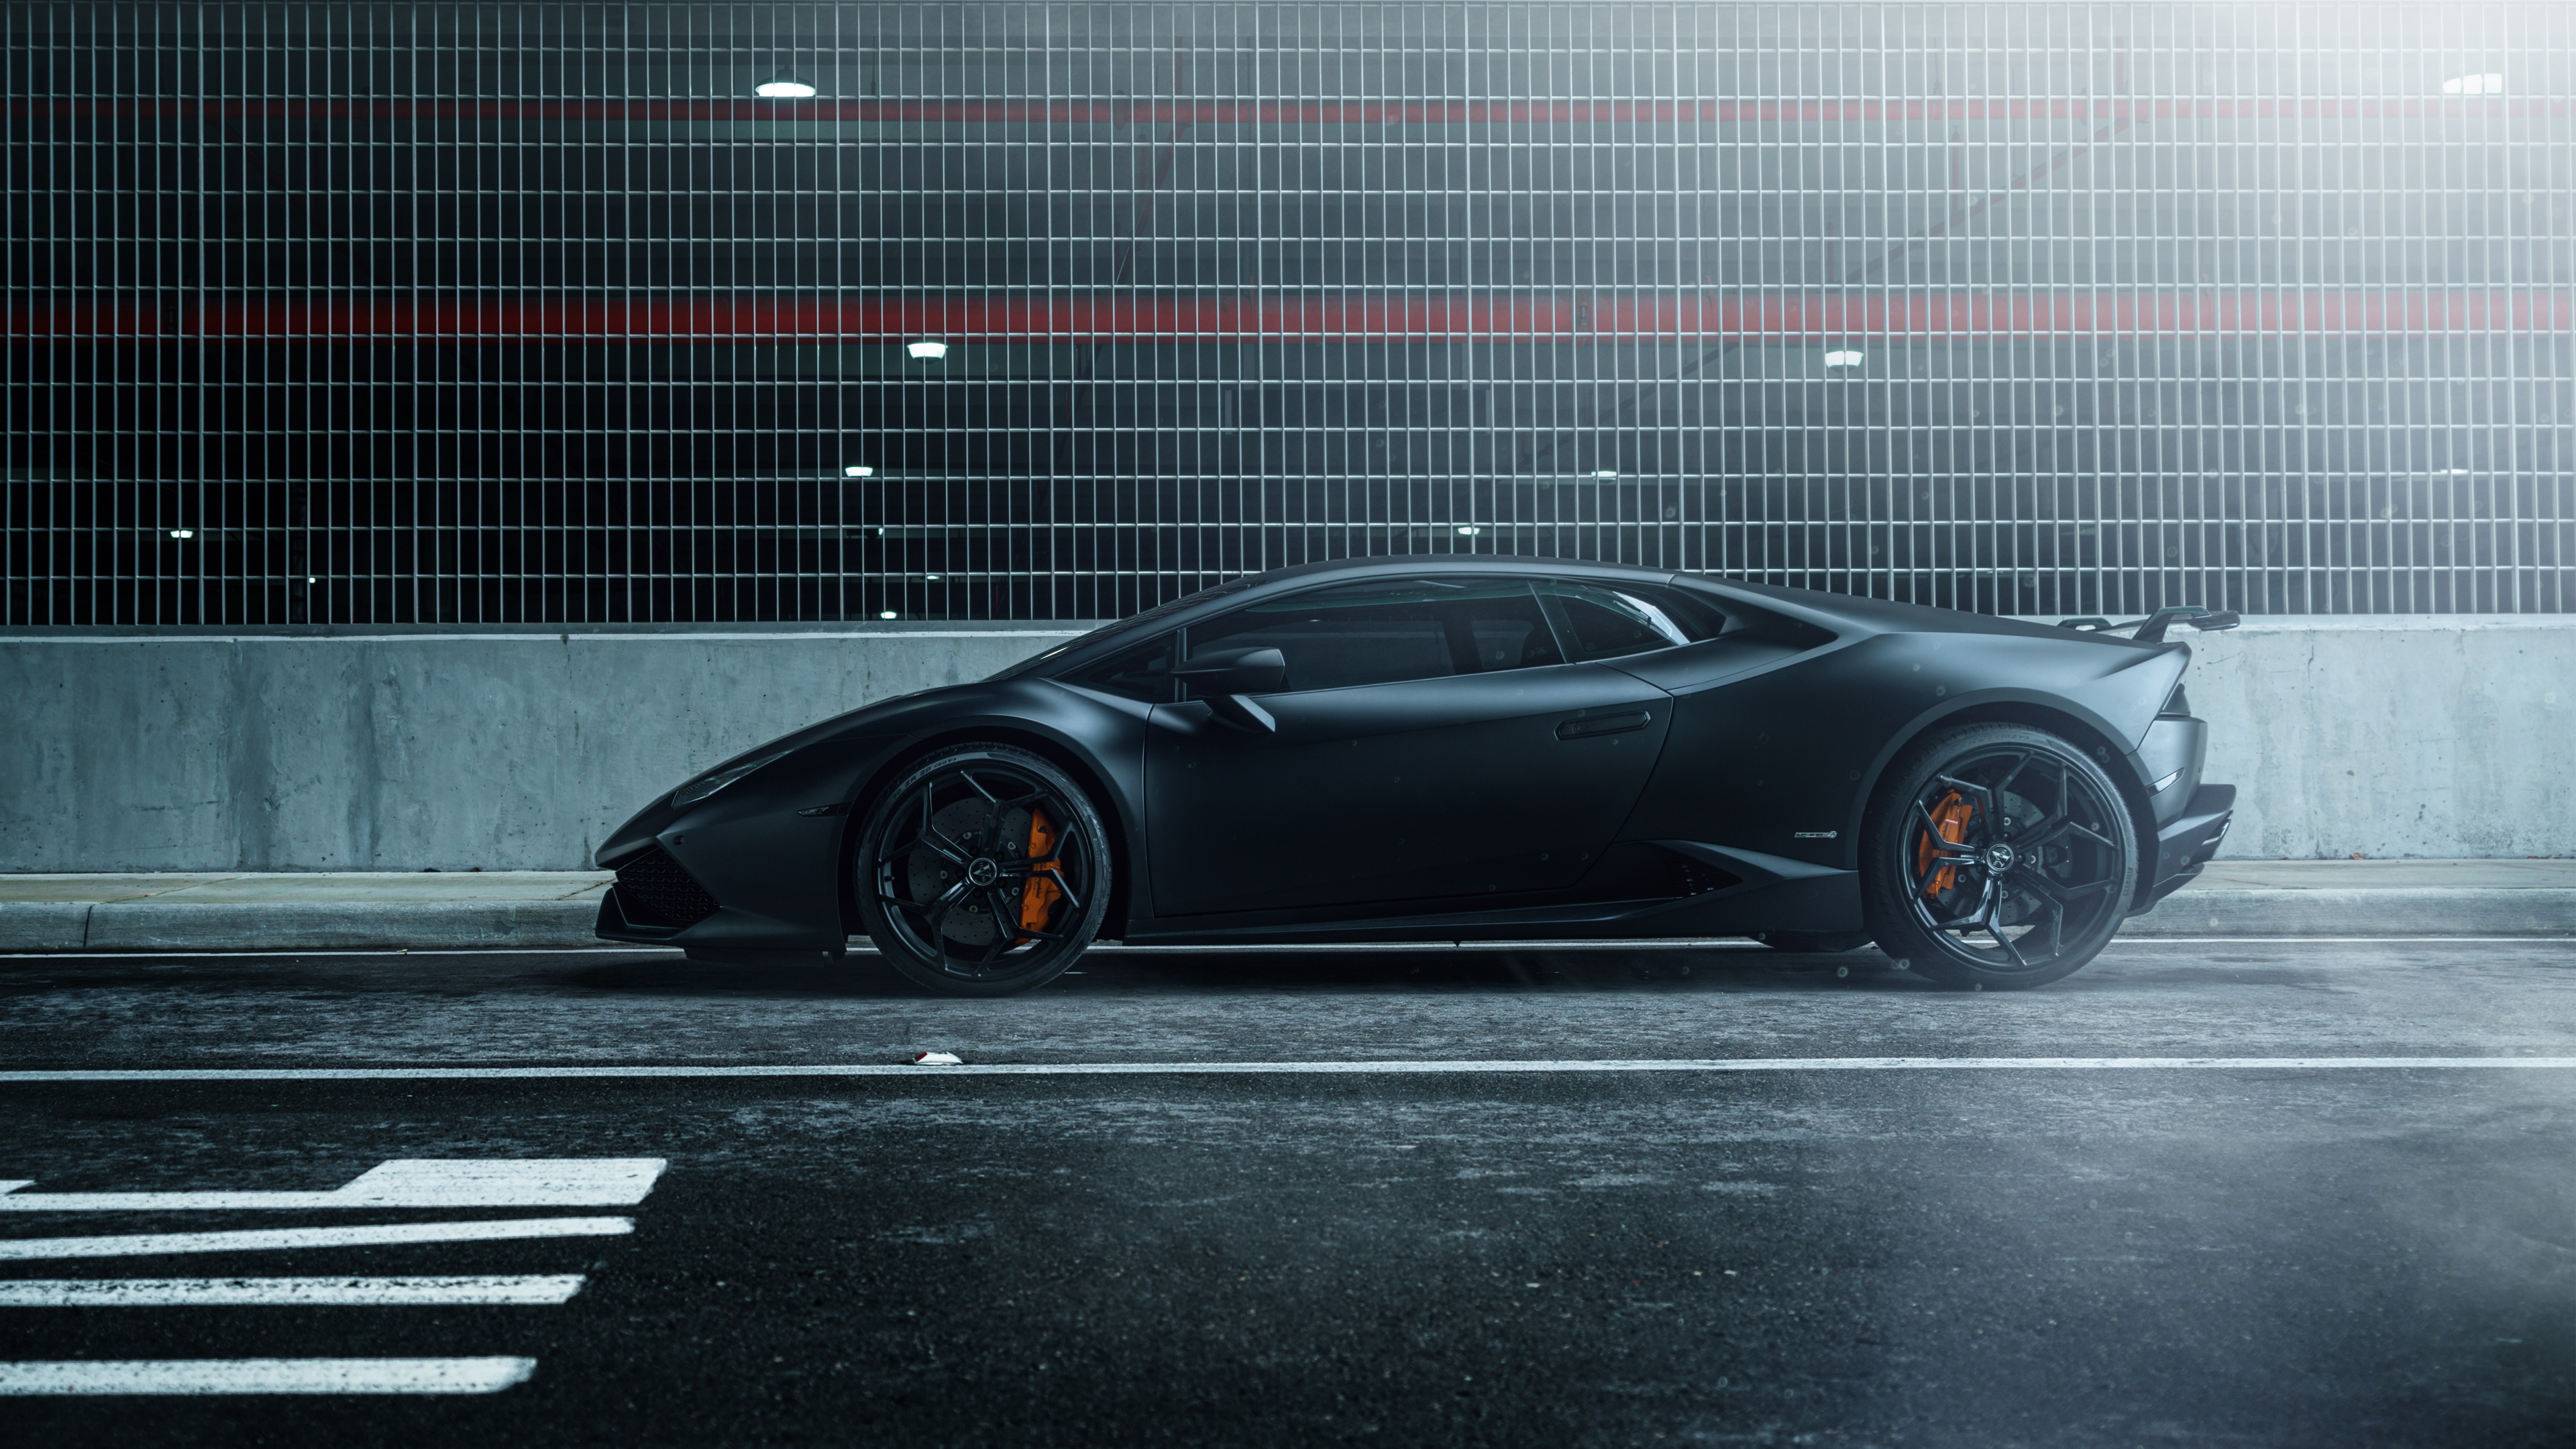 Superb Lamborghini Huracan Vellano MC Matte Black 4K